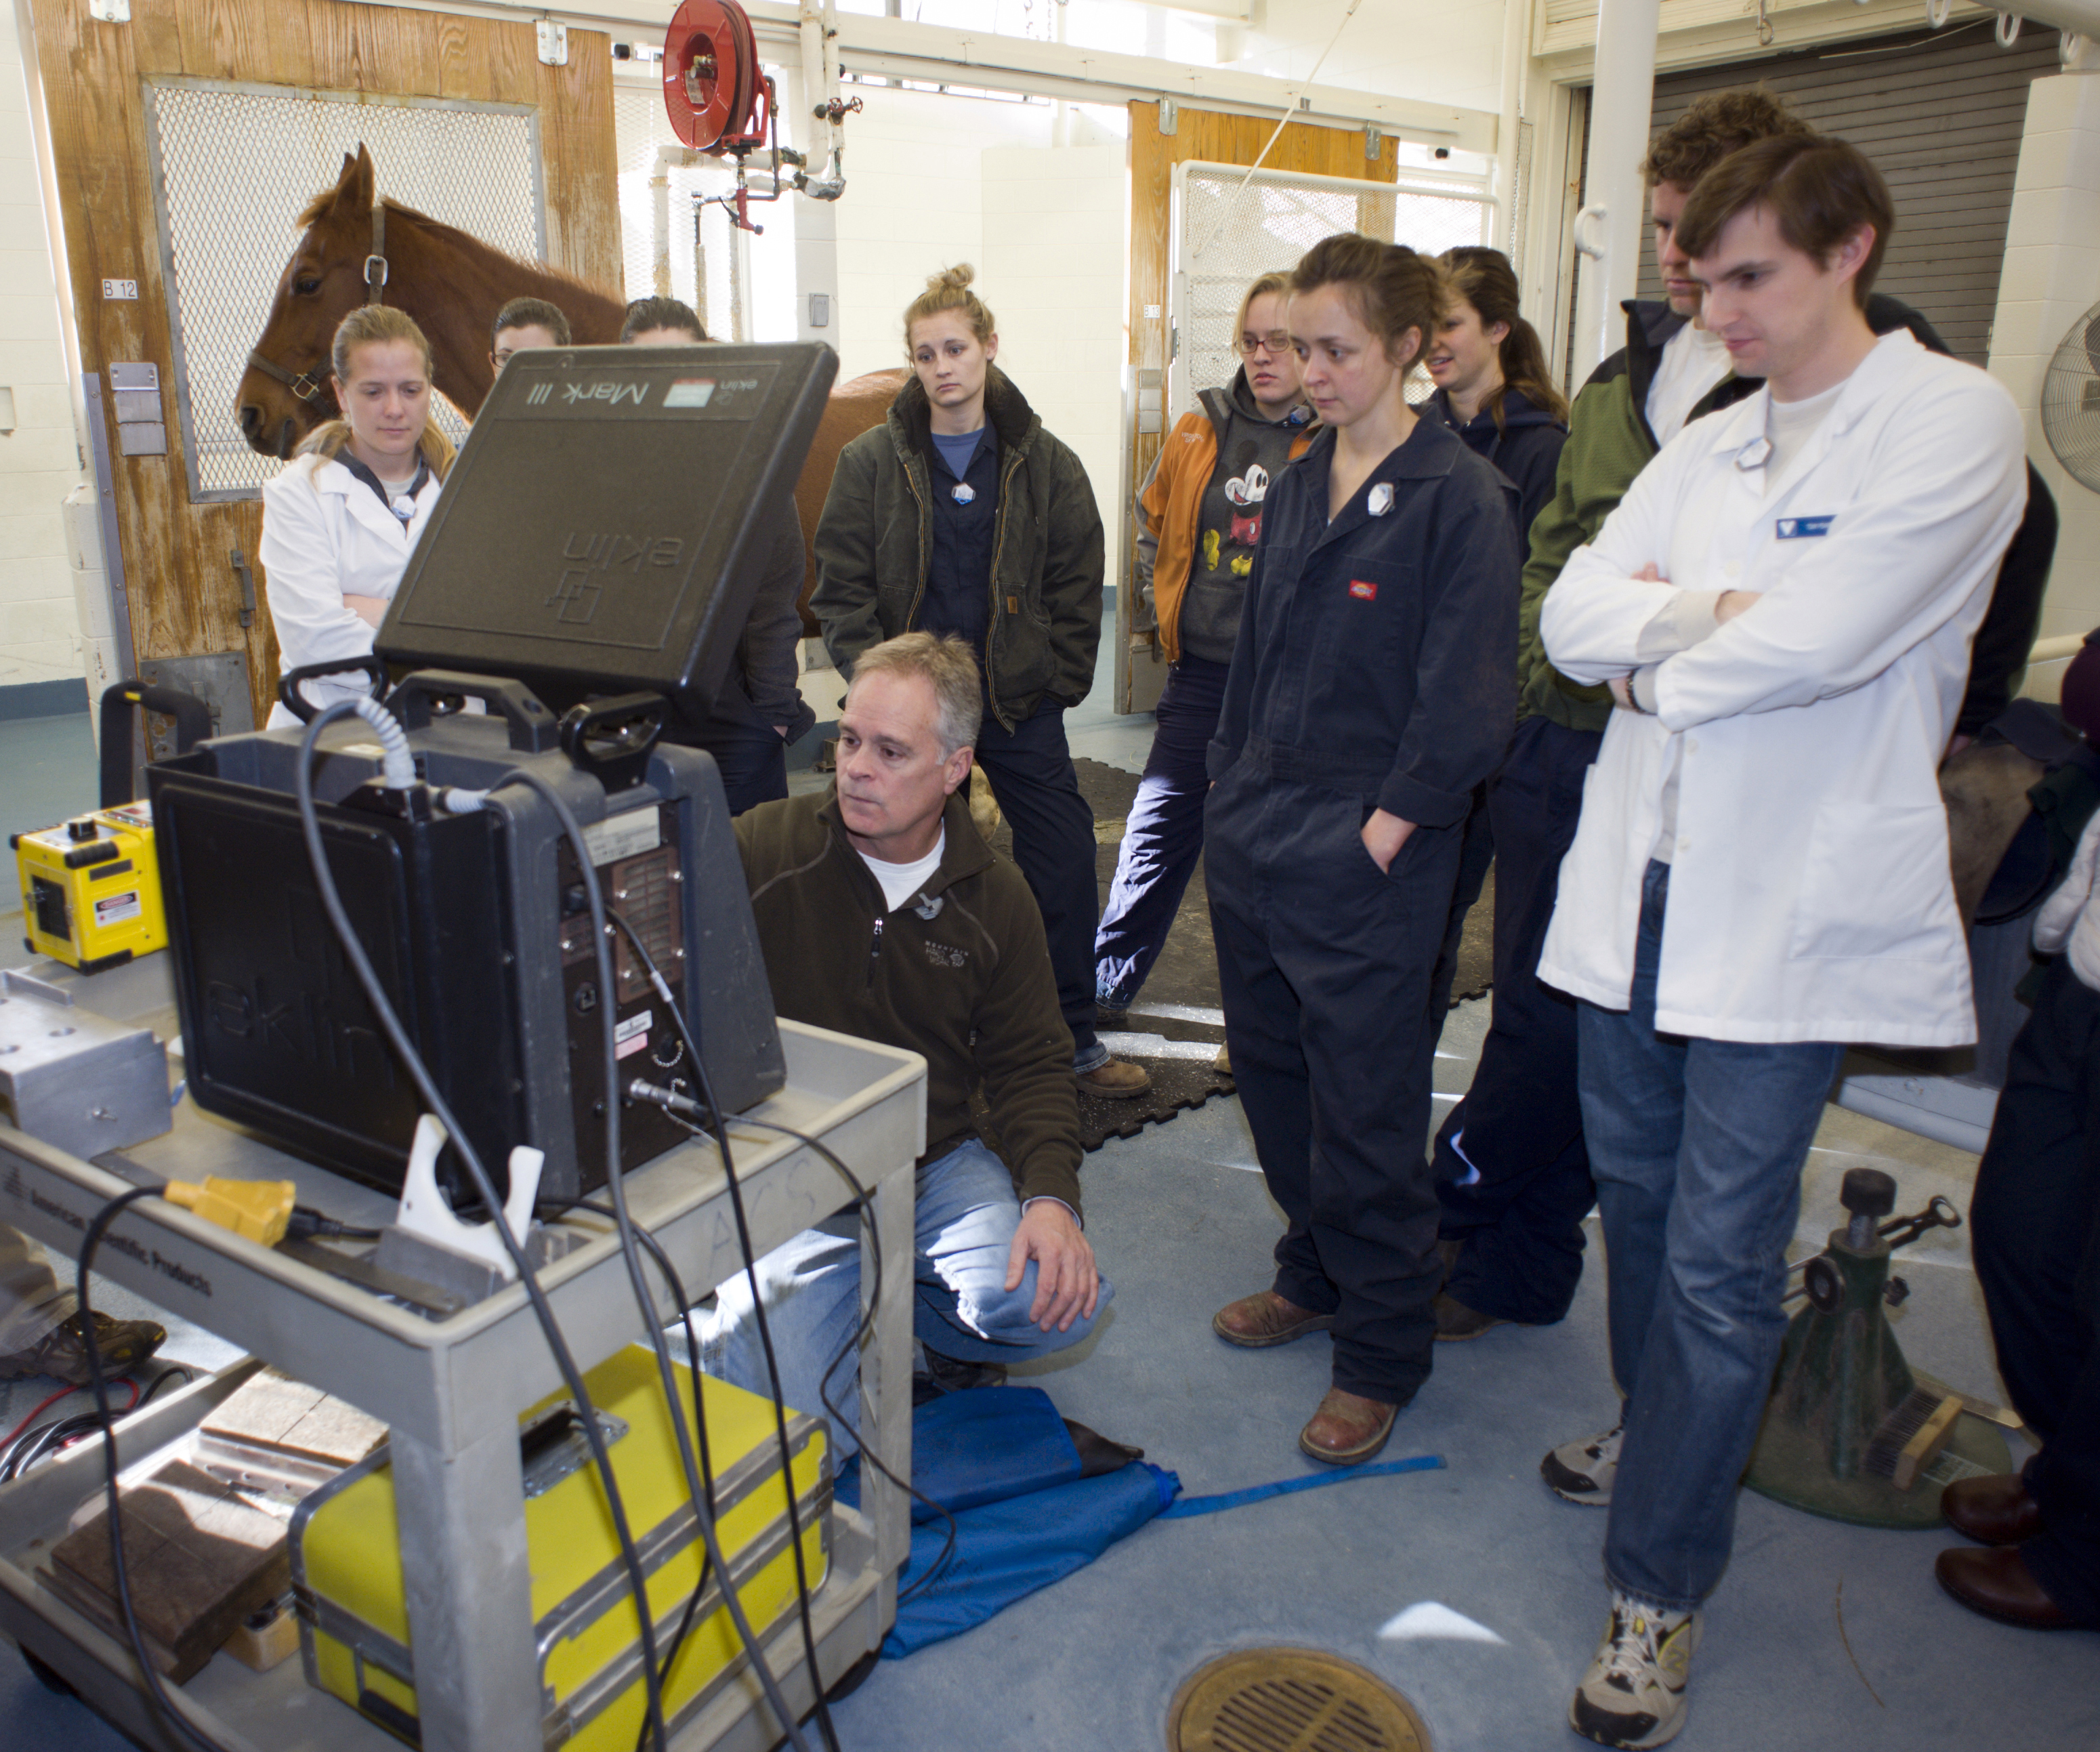 Members of the Equine Field Service team use the latest technology in diagnosis and treatment of horses.